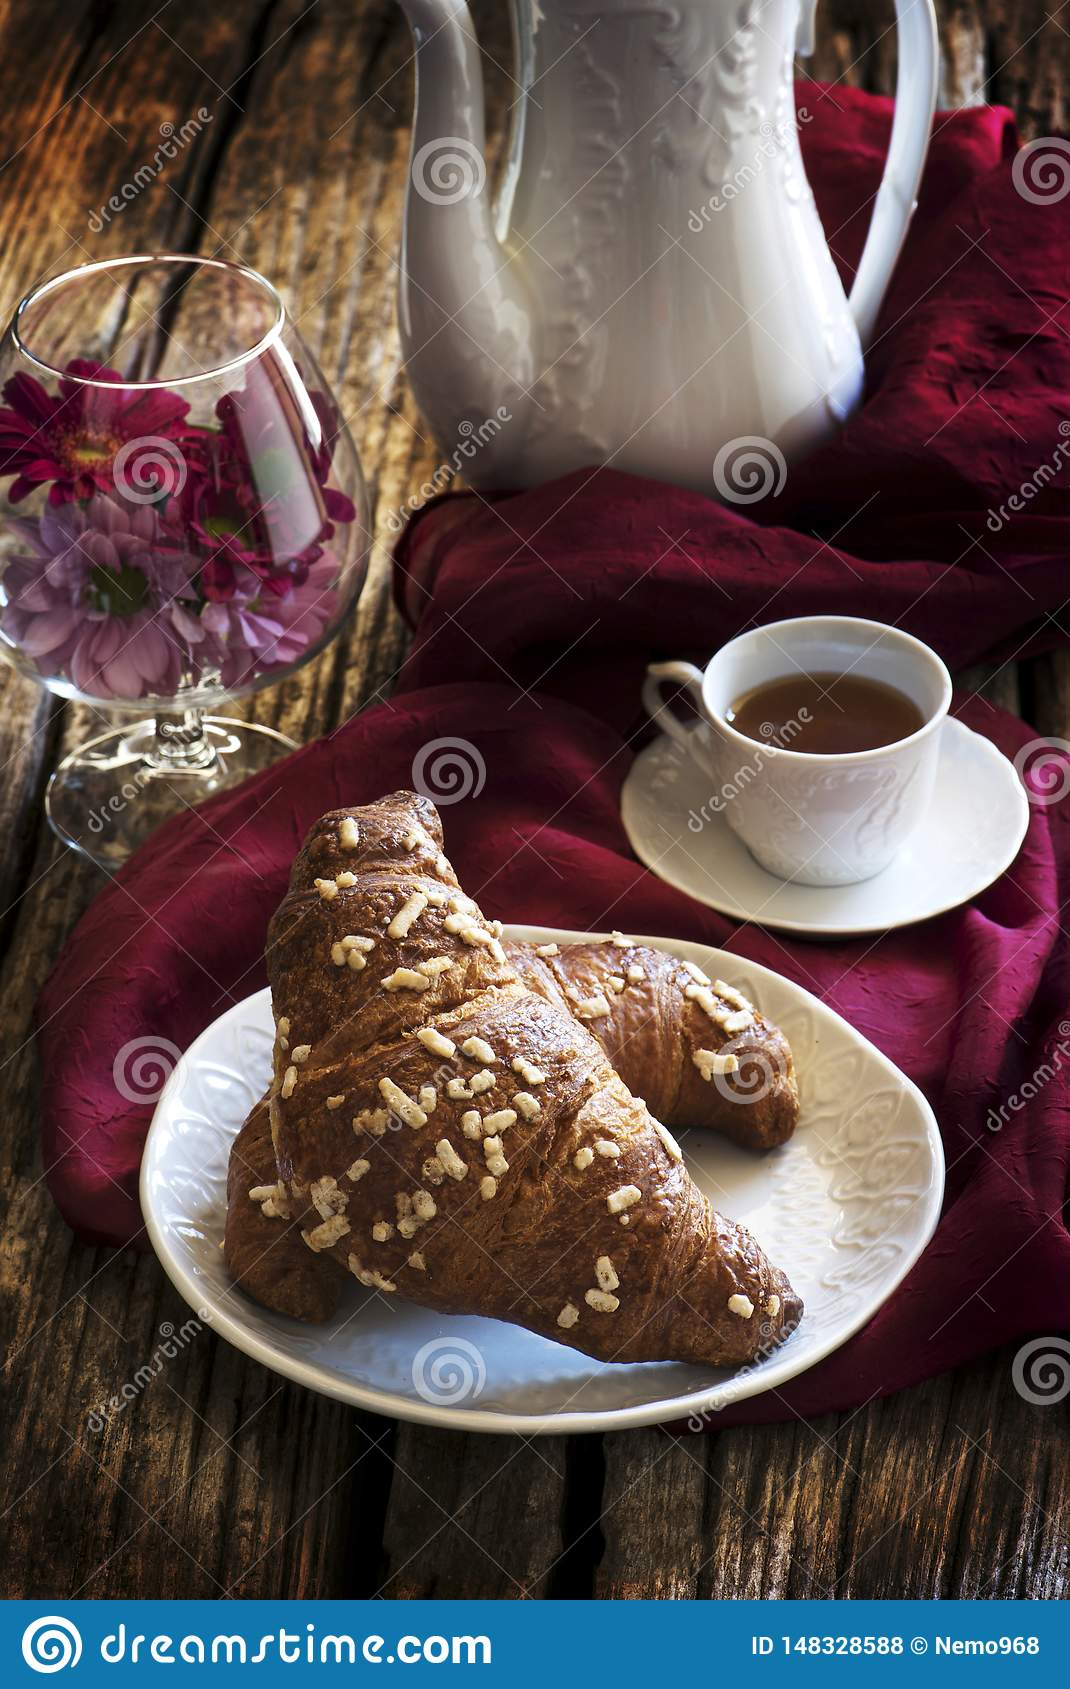 Croissant and coffee with coffee pot and plate